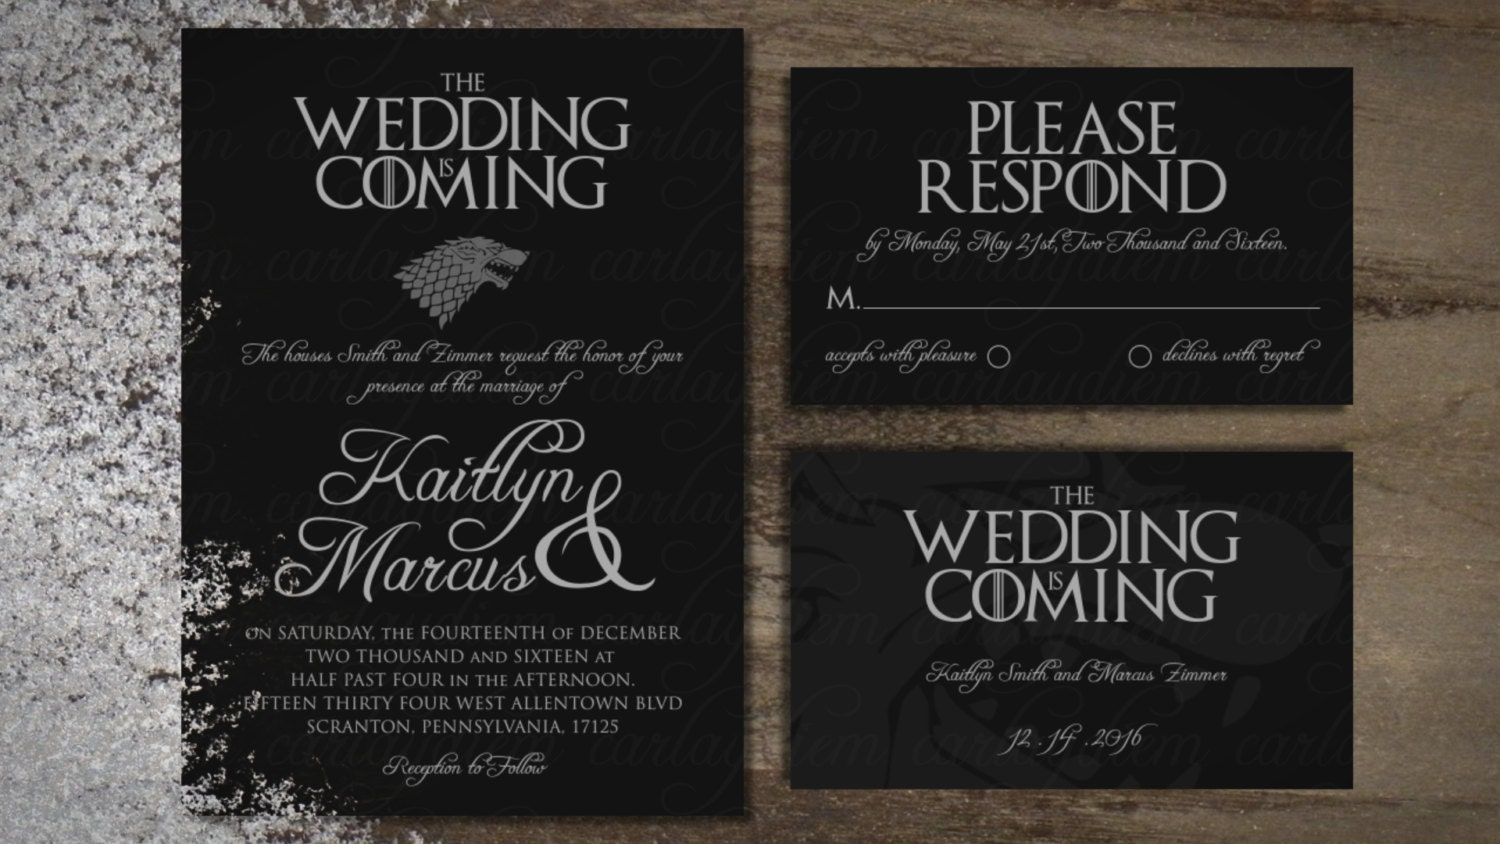 Discover Card Invitation was great invitations layout